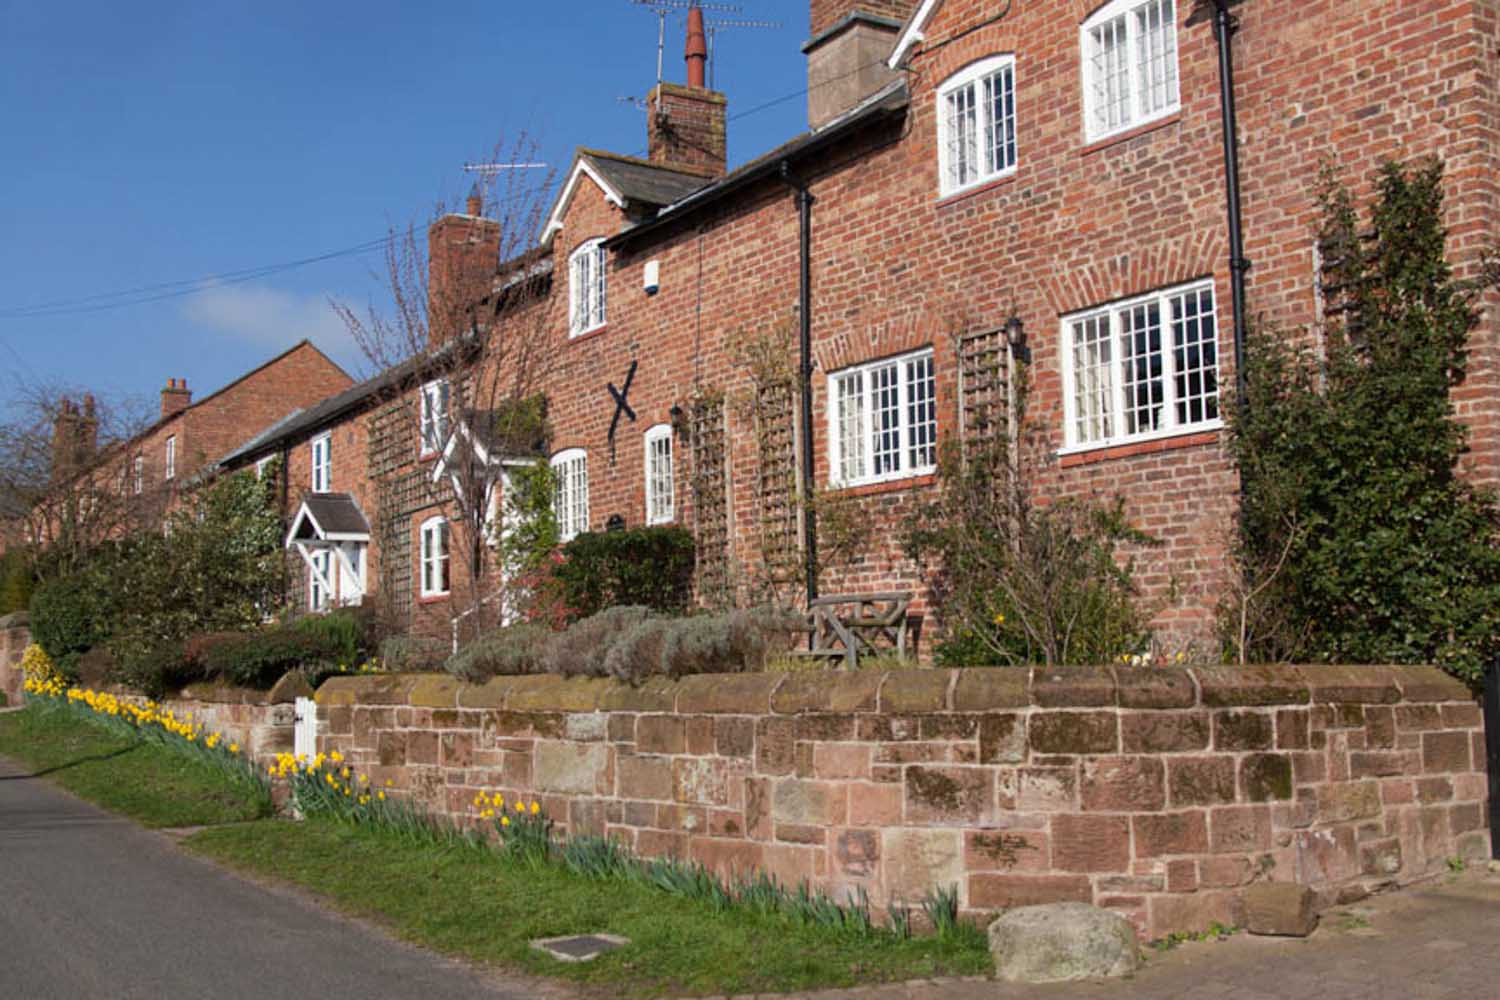 Village of Churton, Cheshire, England. Picturesque spring view of houses on Churton's Pump Lane.